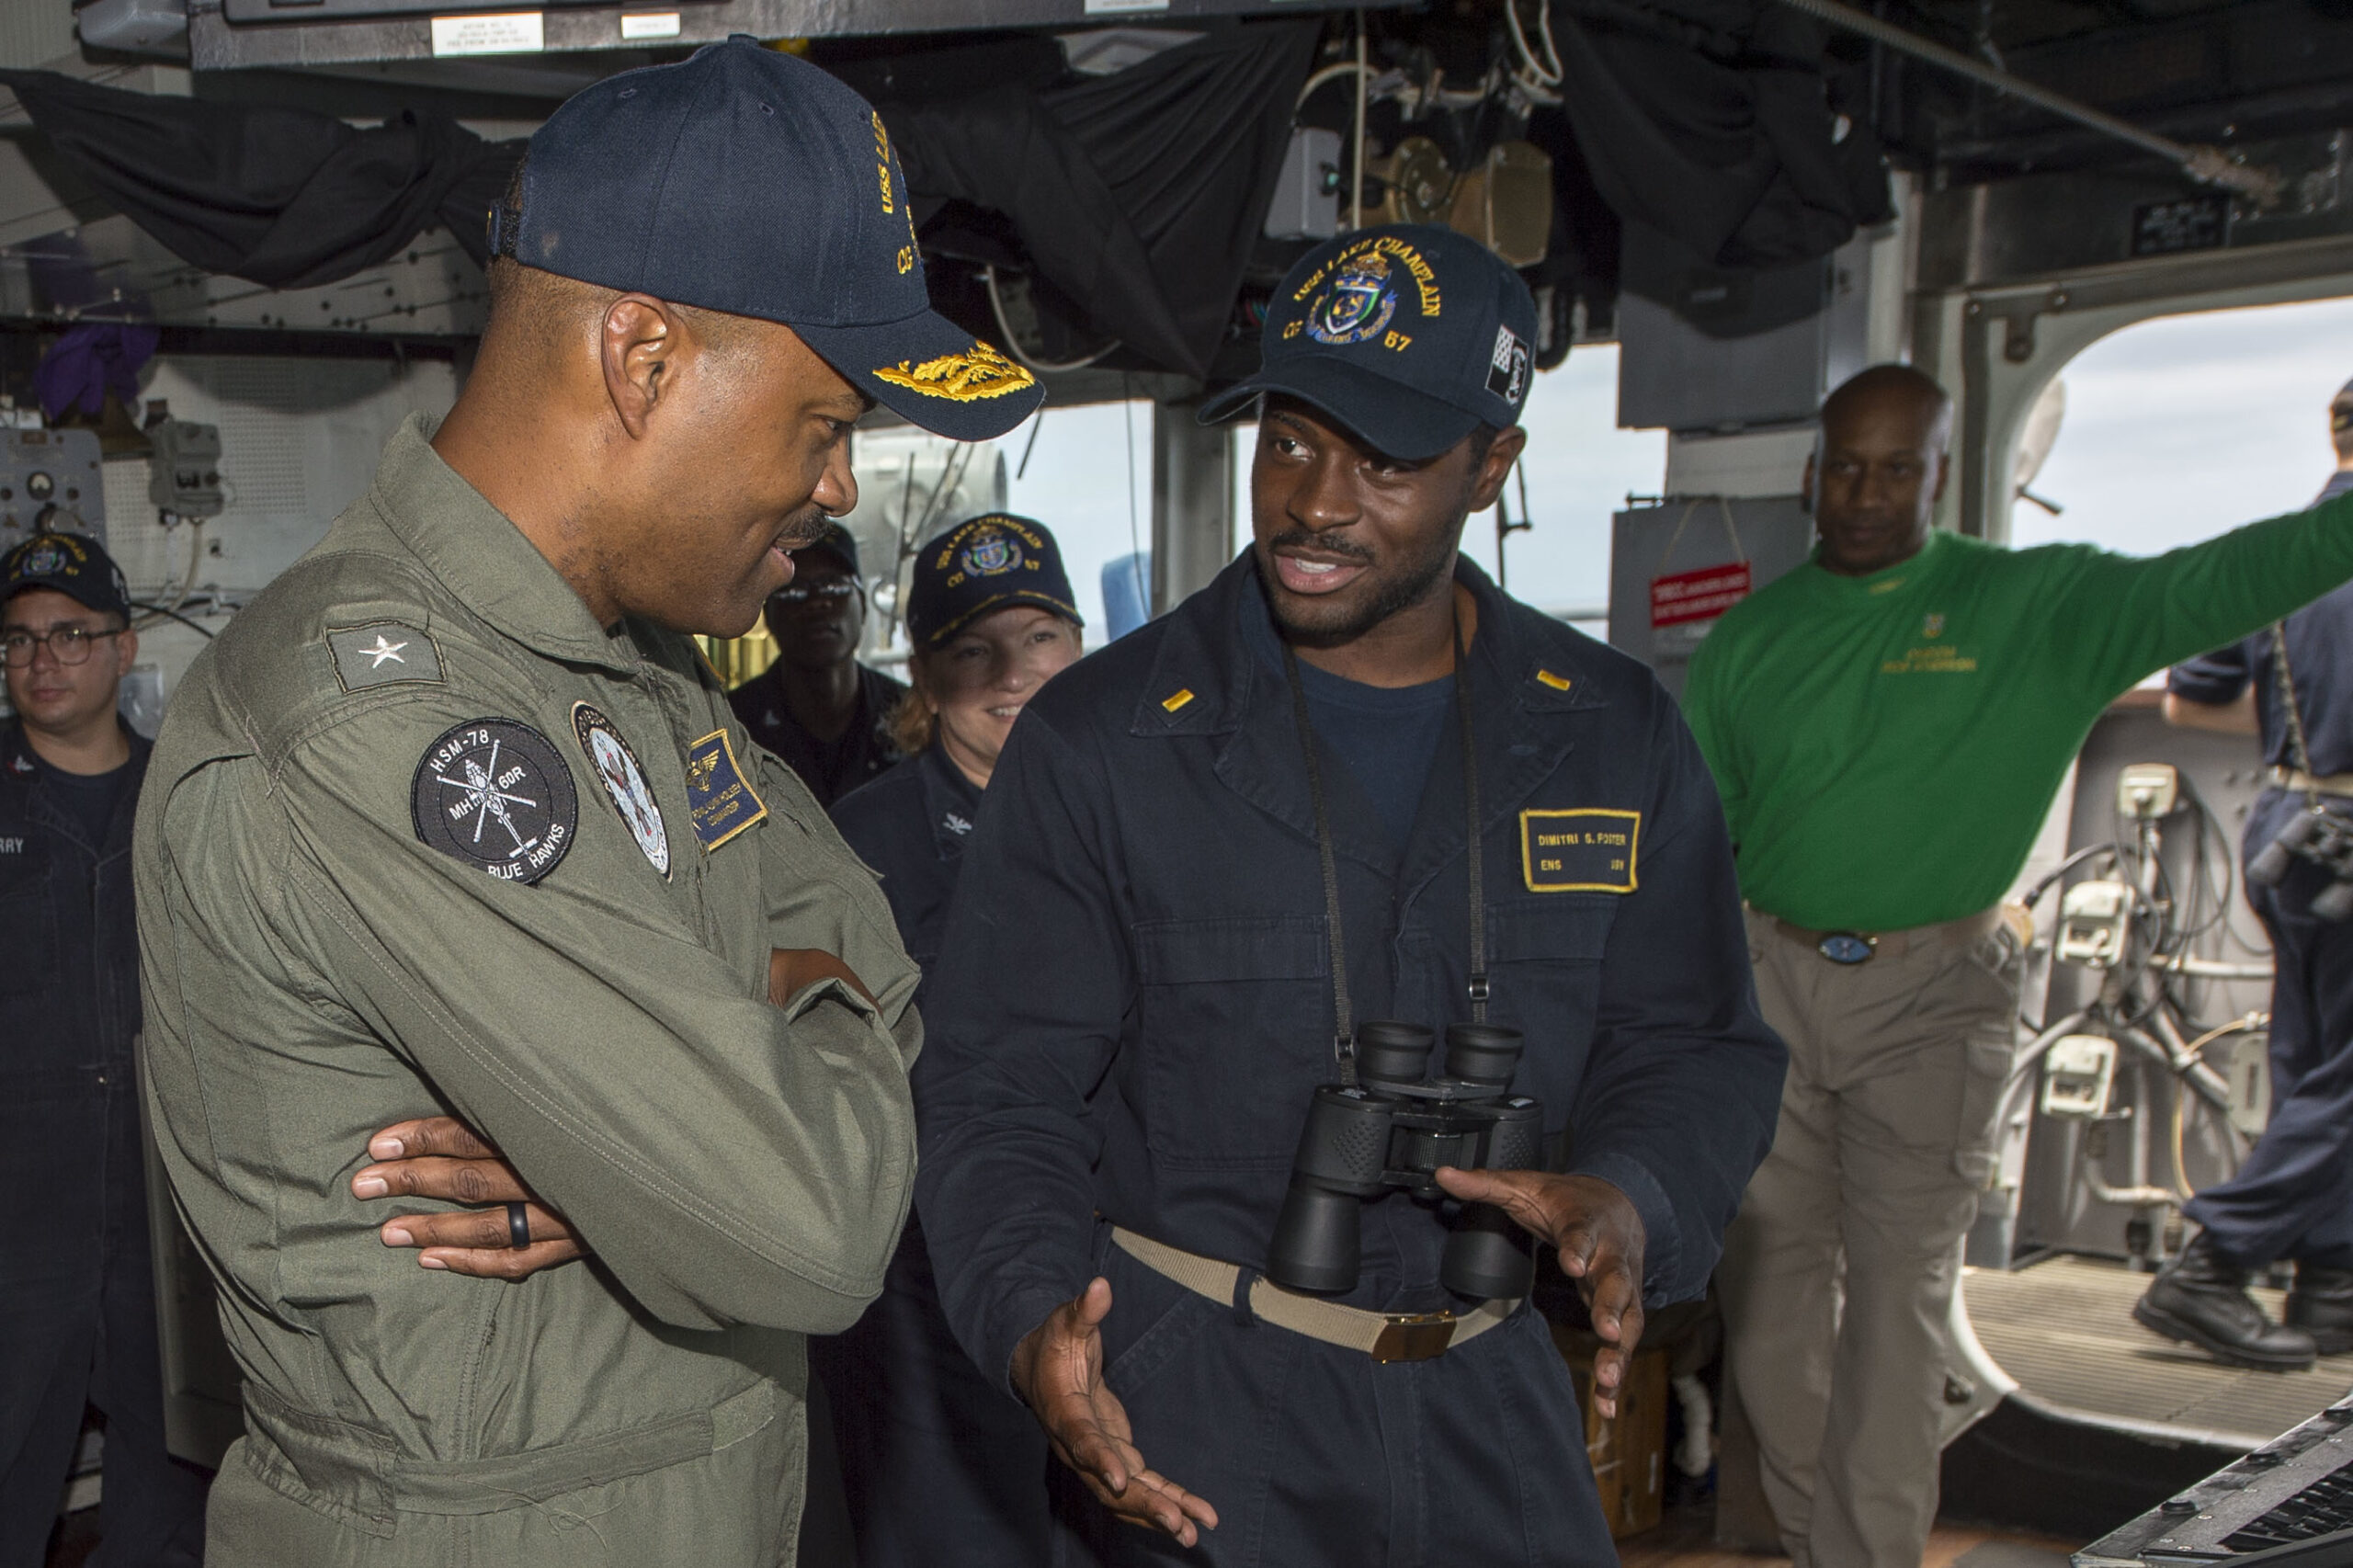 Commander, Carrier Strike Group One, Rear Adm. Alvin Holsey, visits USS Lake Champlain (CG 57)